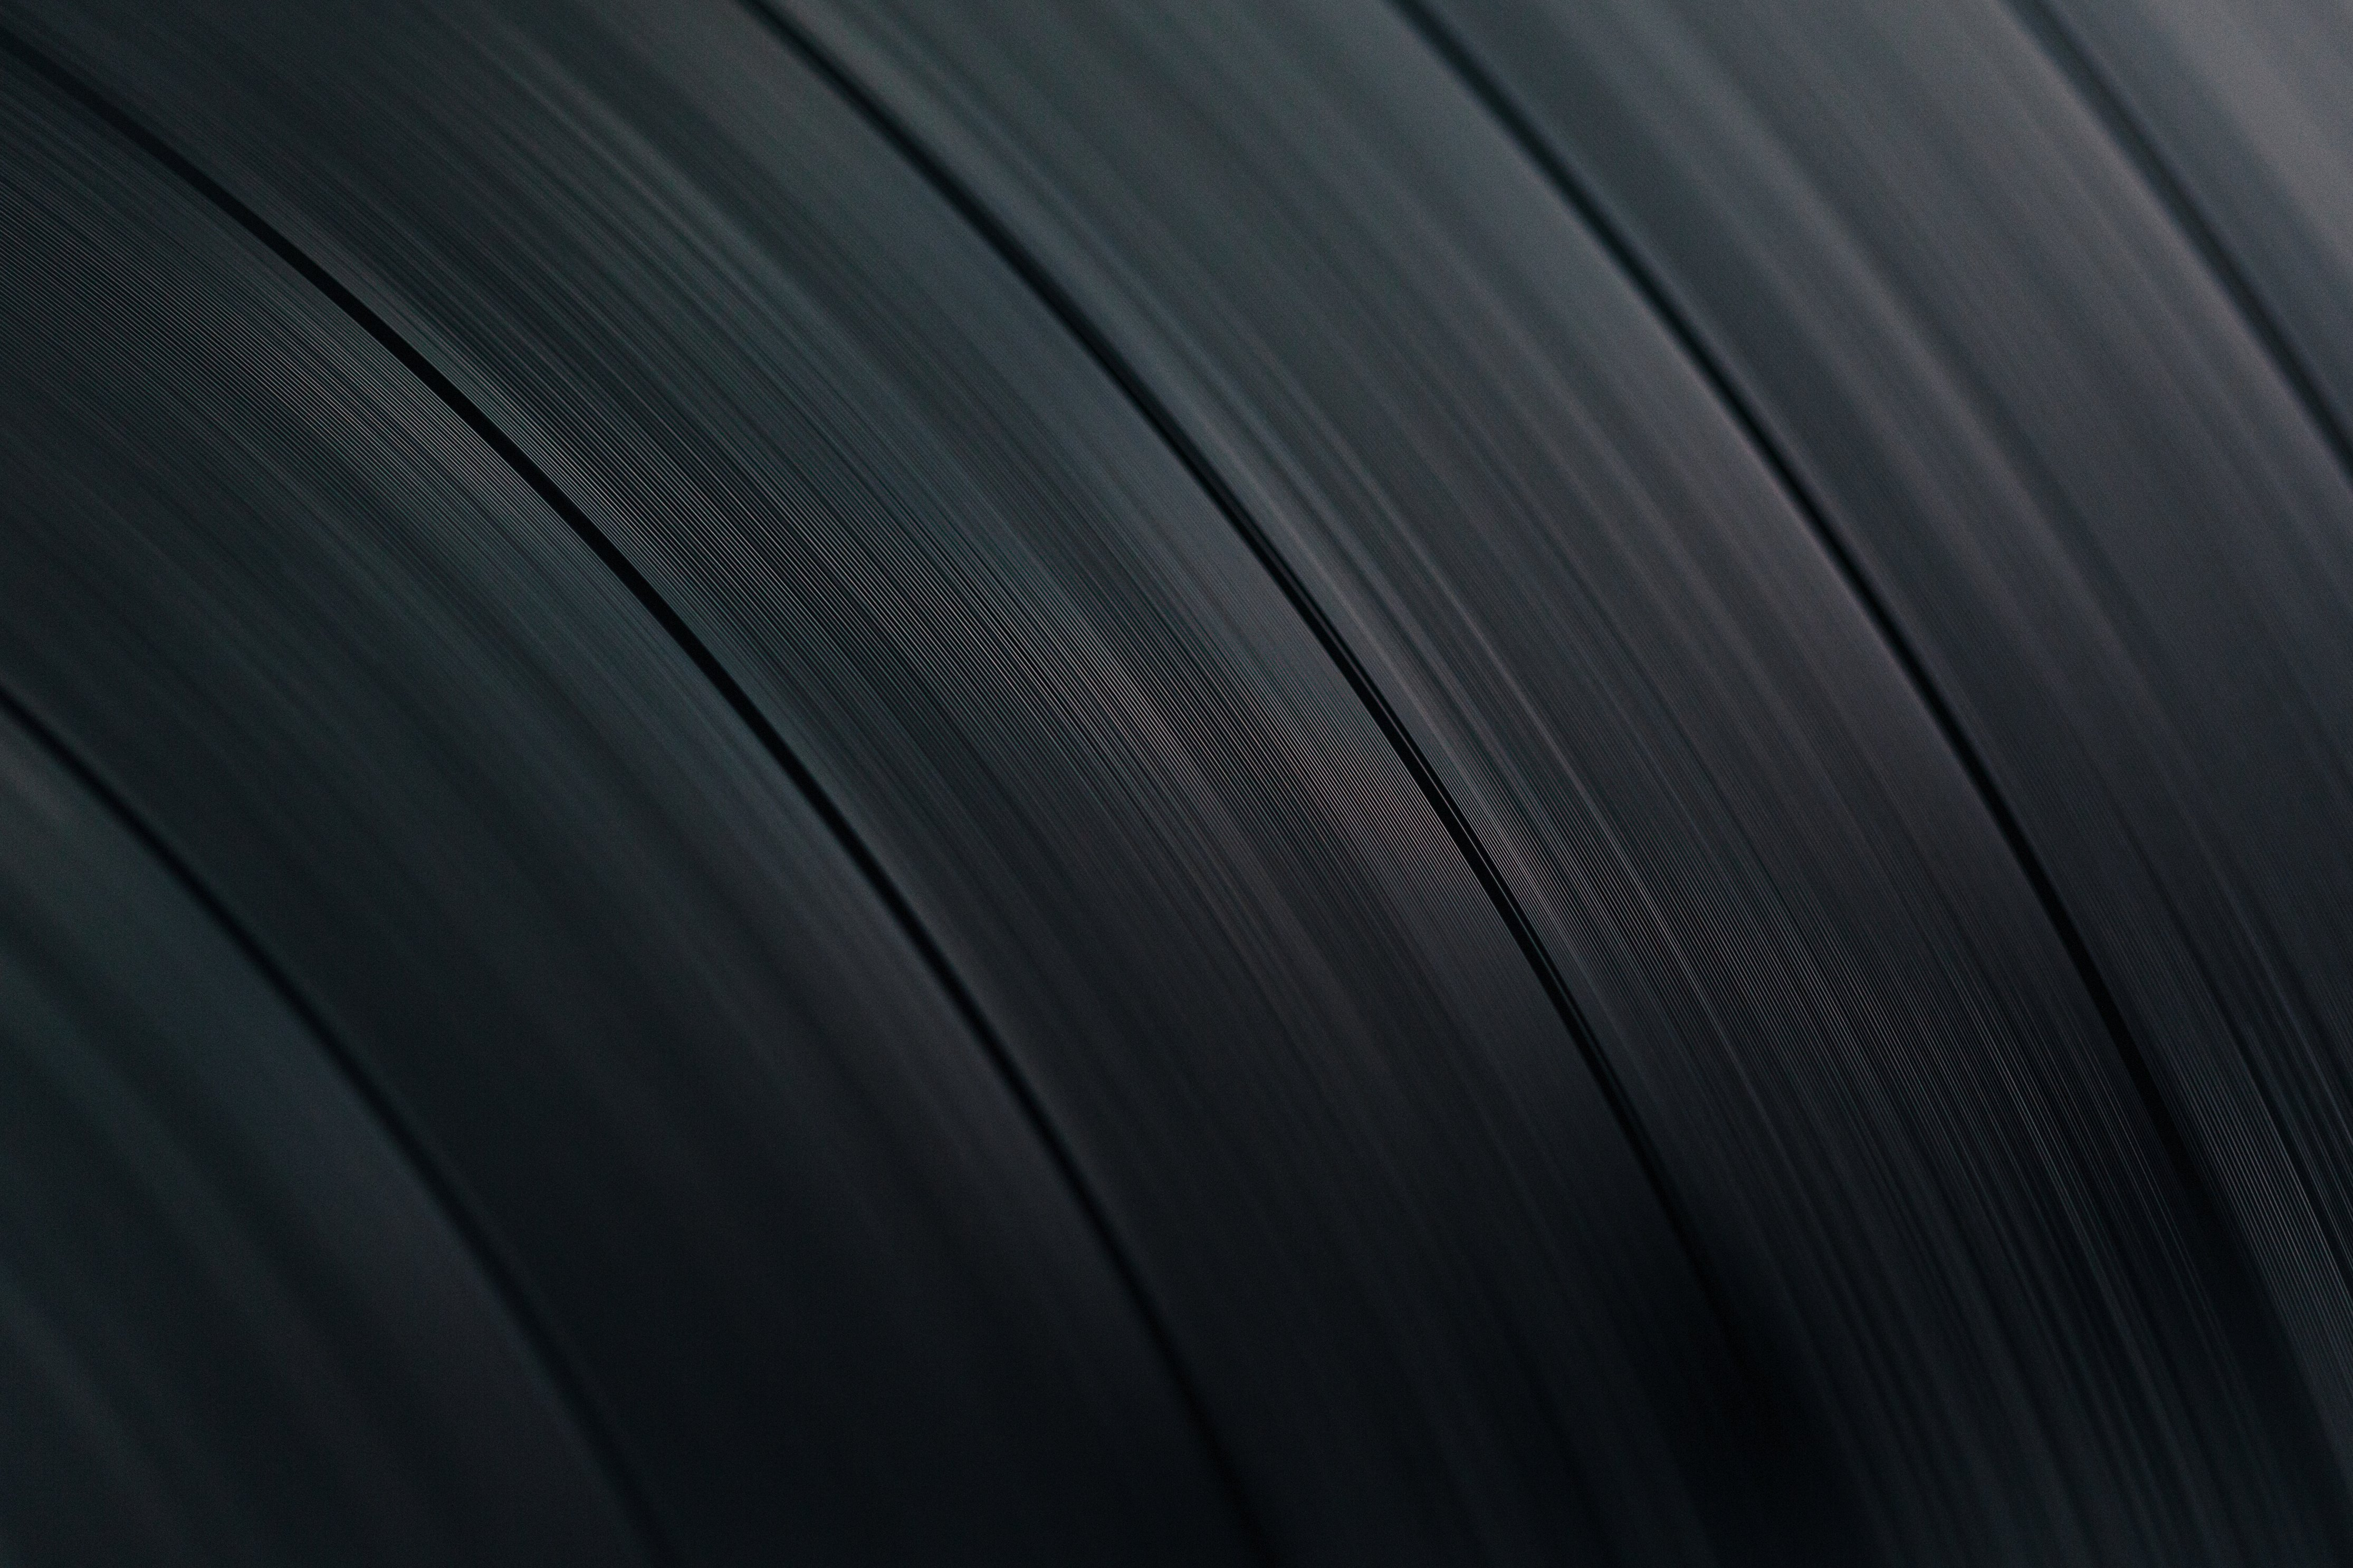 4k Wallpaper Wallpaper By Gstblack: Vinyl Record Spinning, HD Abstract, 4k Wallpapers, Images